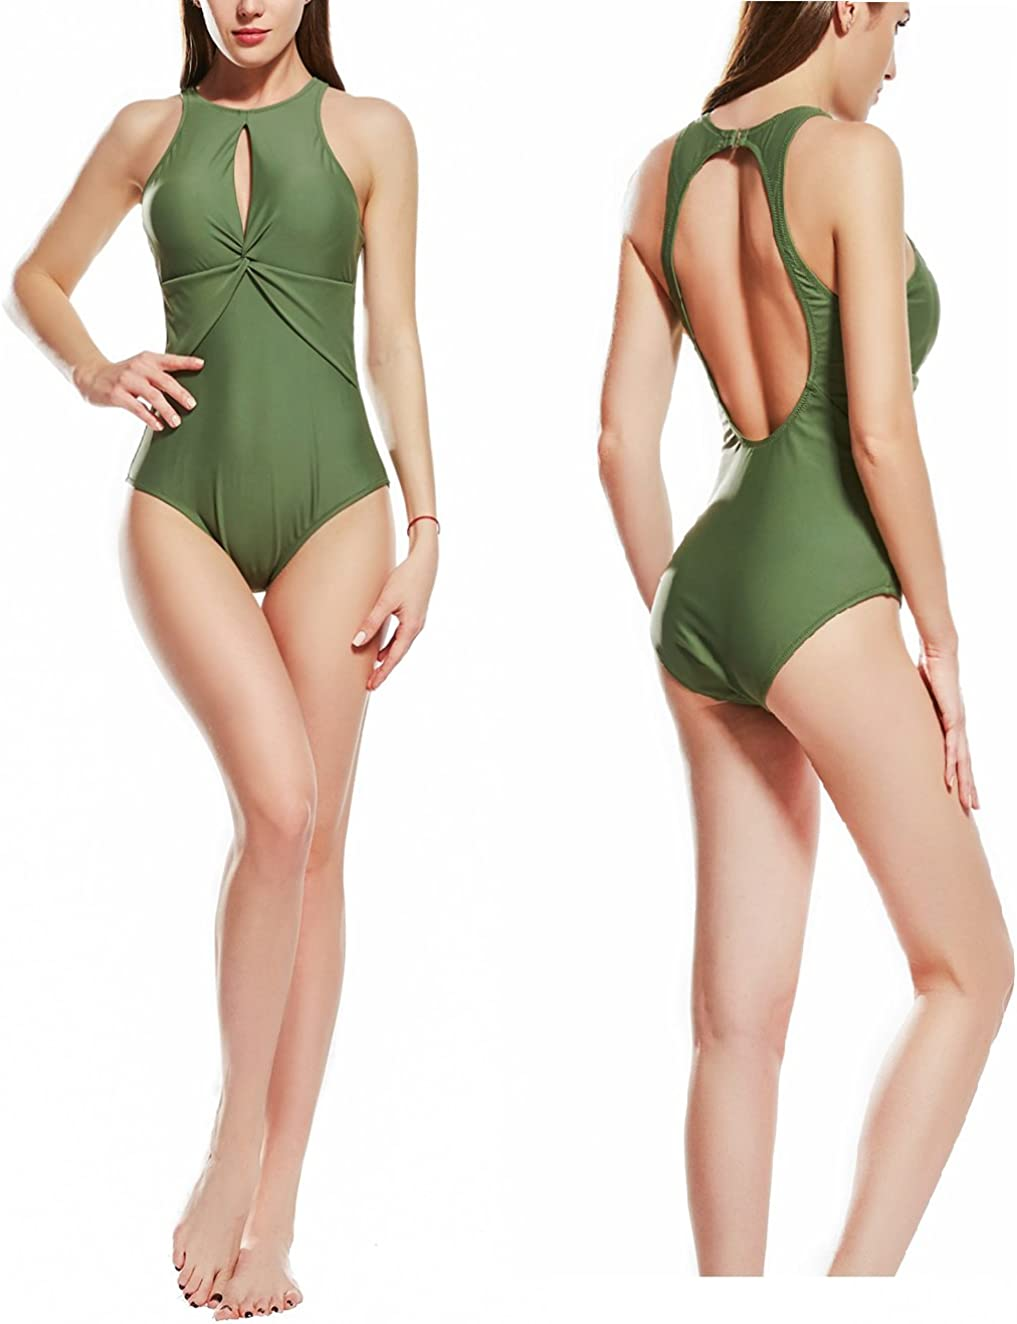 ANTSANG Womens One Piece Swimsuit Bathing Suit for Athletic Sport Training Exercise Racing